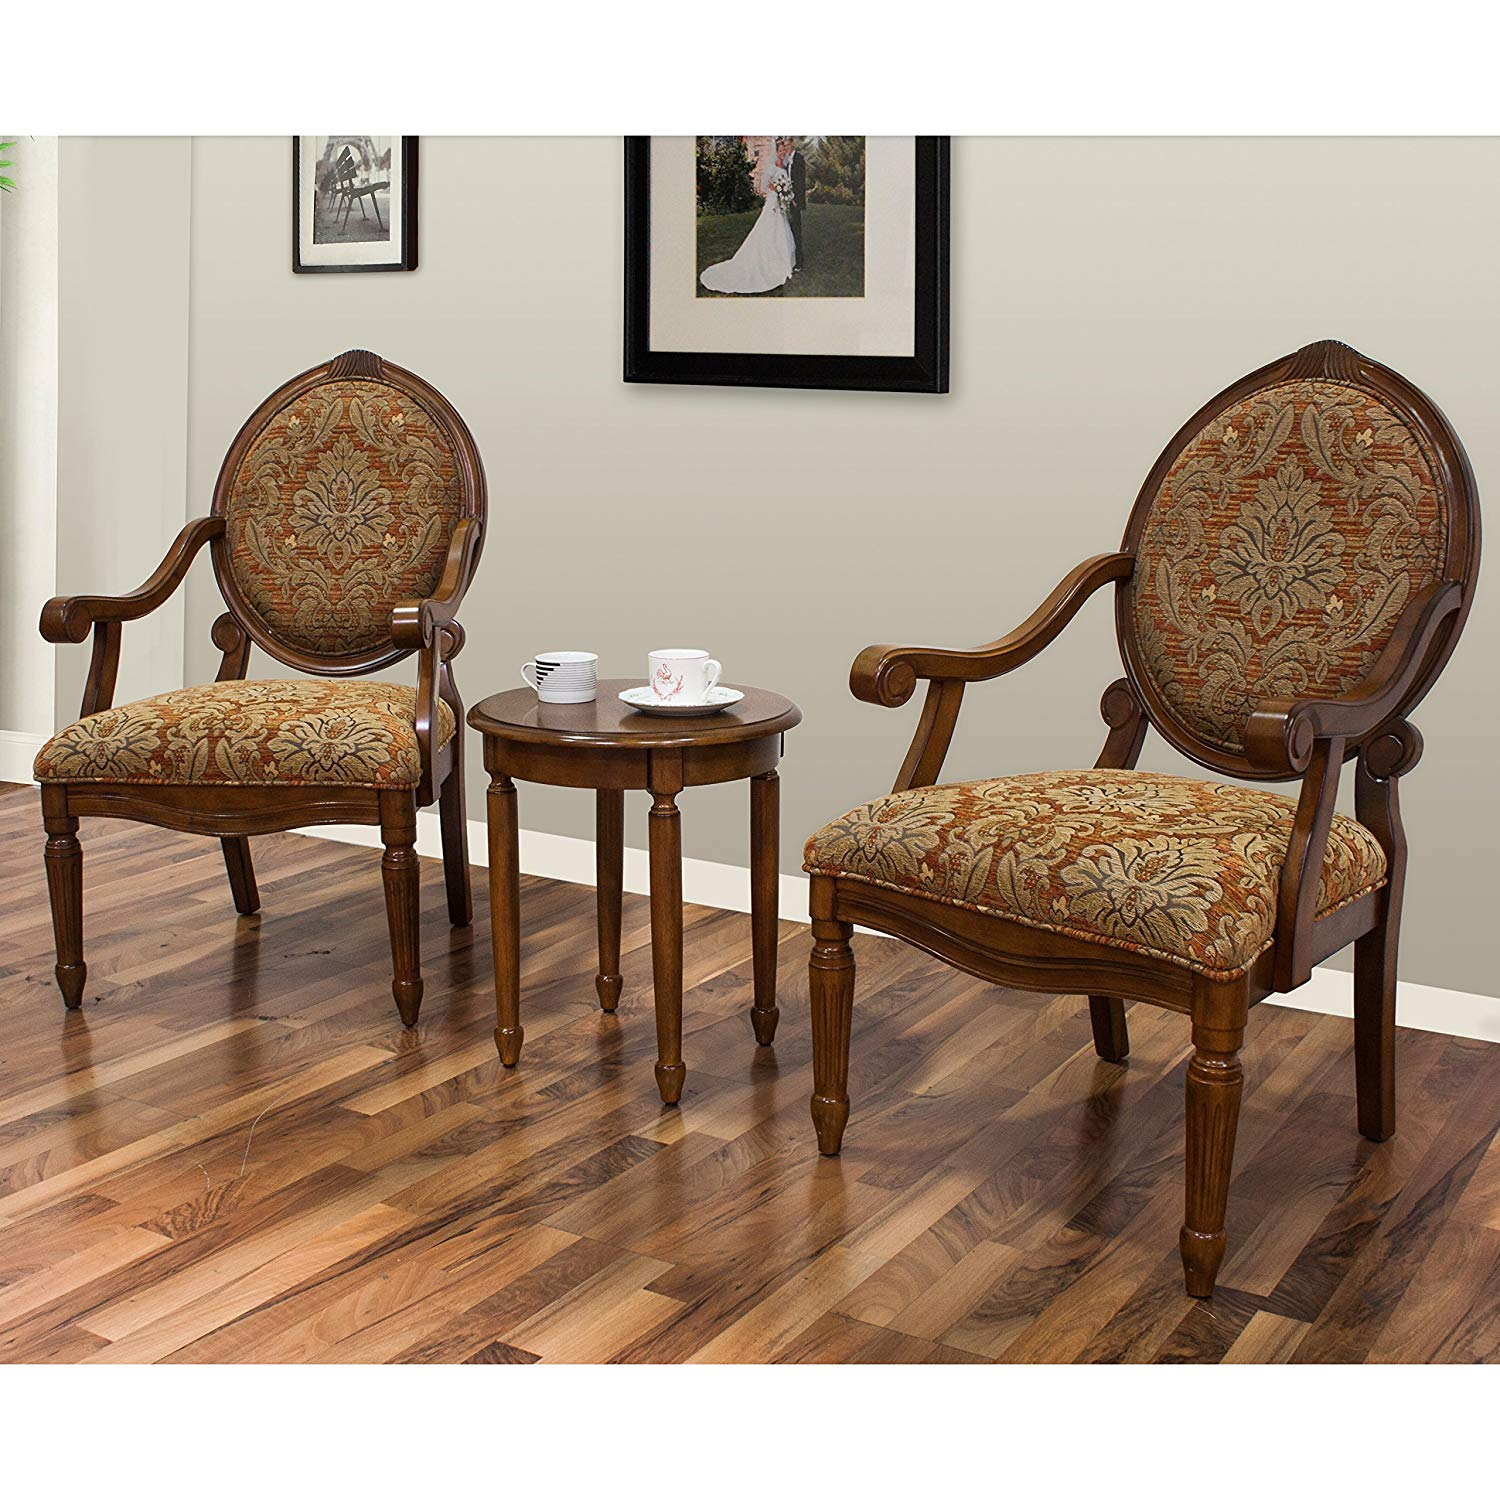 best master furniture miranda traditional living accent chair set with table room and kitchen dining wicker porch clothes brown lamp cocktail end sets contemporary style folding